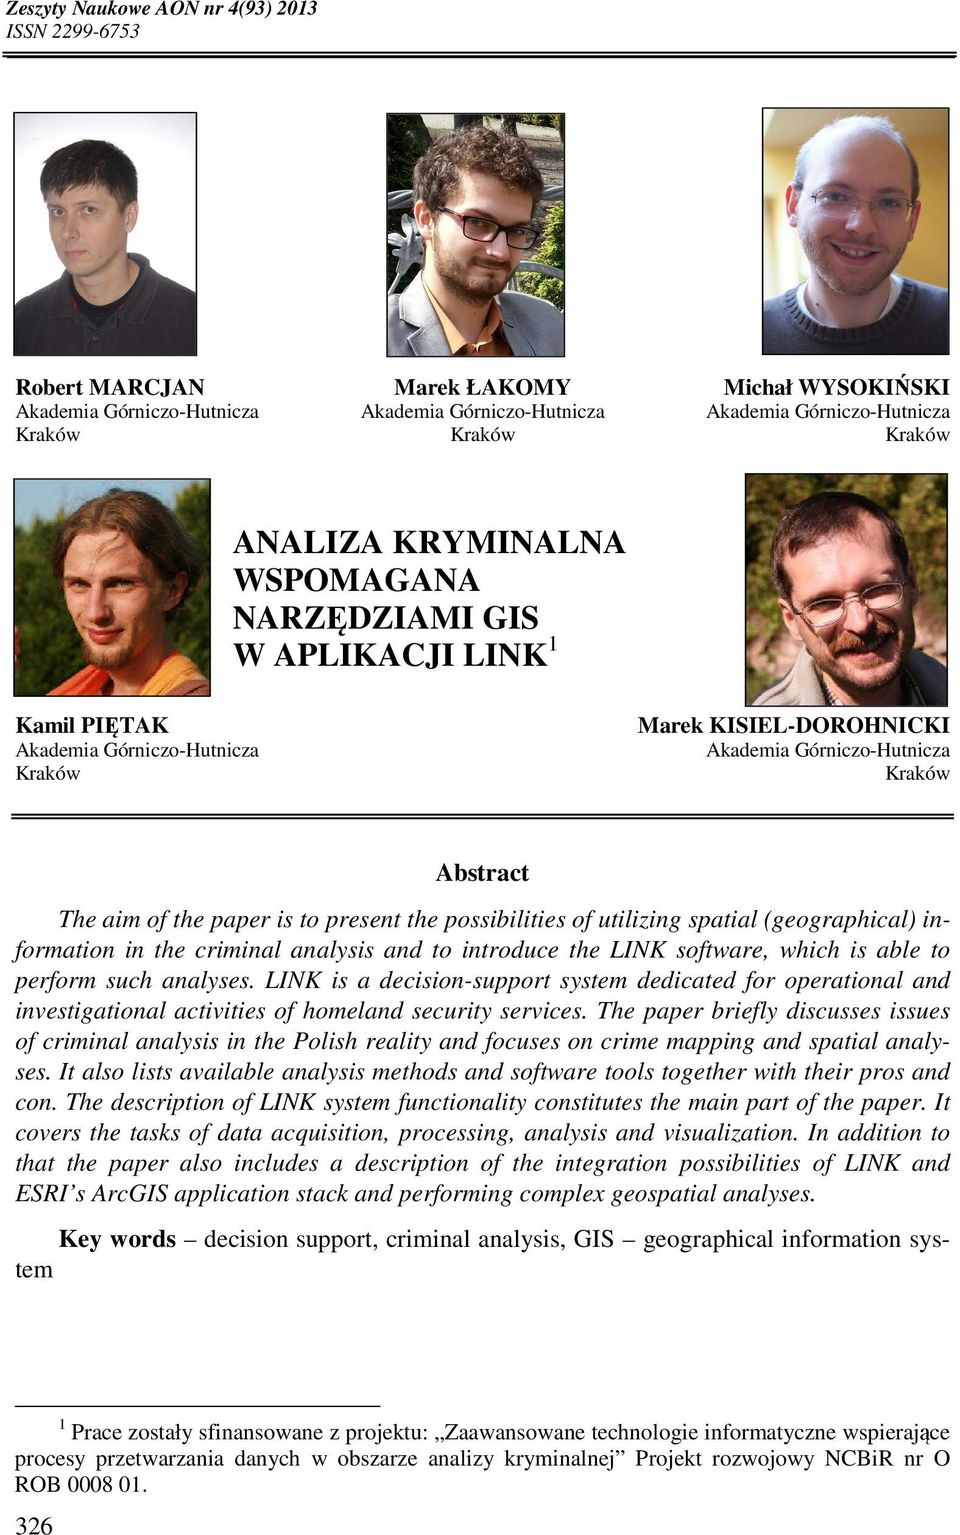 NARZĘDZIAMI GIS W APLIKACJI LINK 1 Kamil PIĘTAK Akademia Górniczo-Hutnicza Kraków Marek KISIEL-DOROHNICKI Akademia Górniczo-Hutnicza Kraków Abstract The aim of the paper is to present the